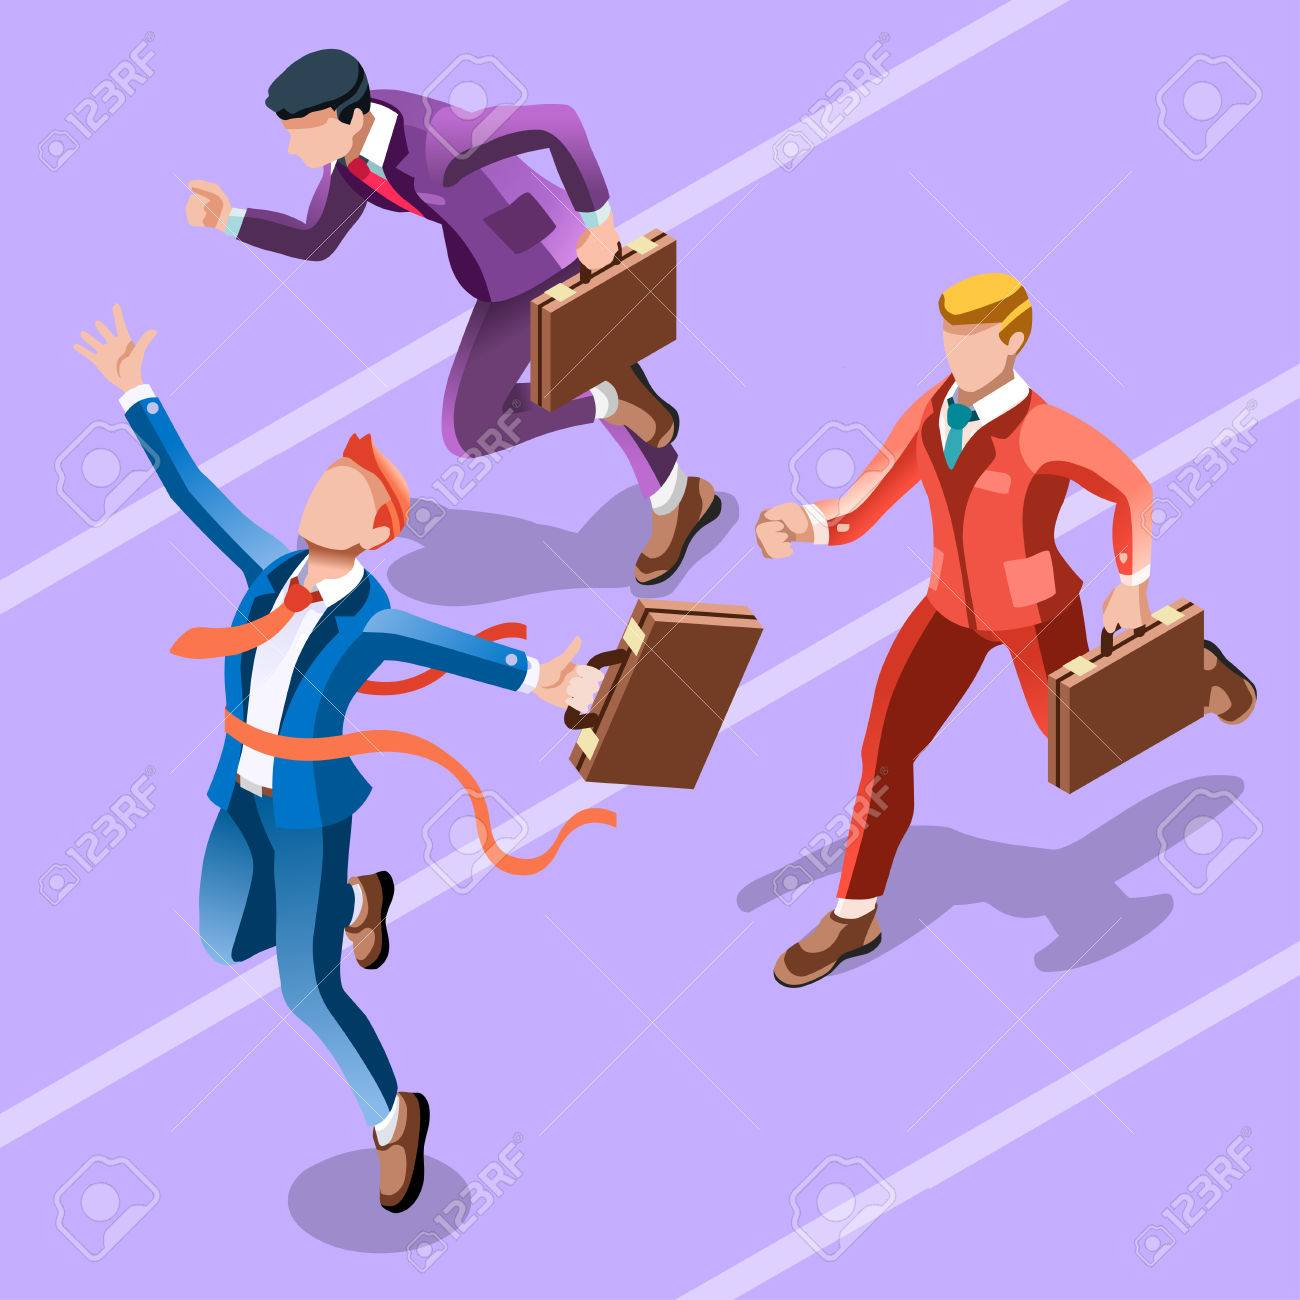 Business concept infographic vector design. Businessperson 3D character flat ambitious man. Job ambition changing role. Winning Startup group training goal setting and team management illustration Archivio Fotografico - 66680118